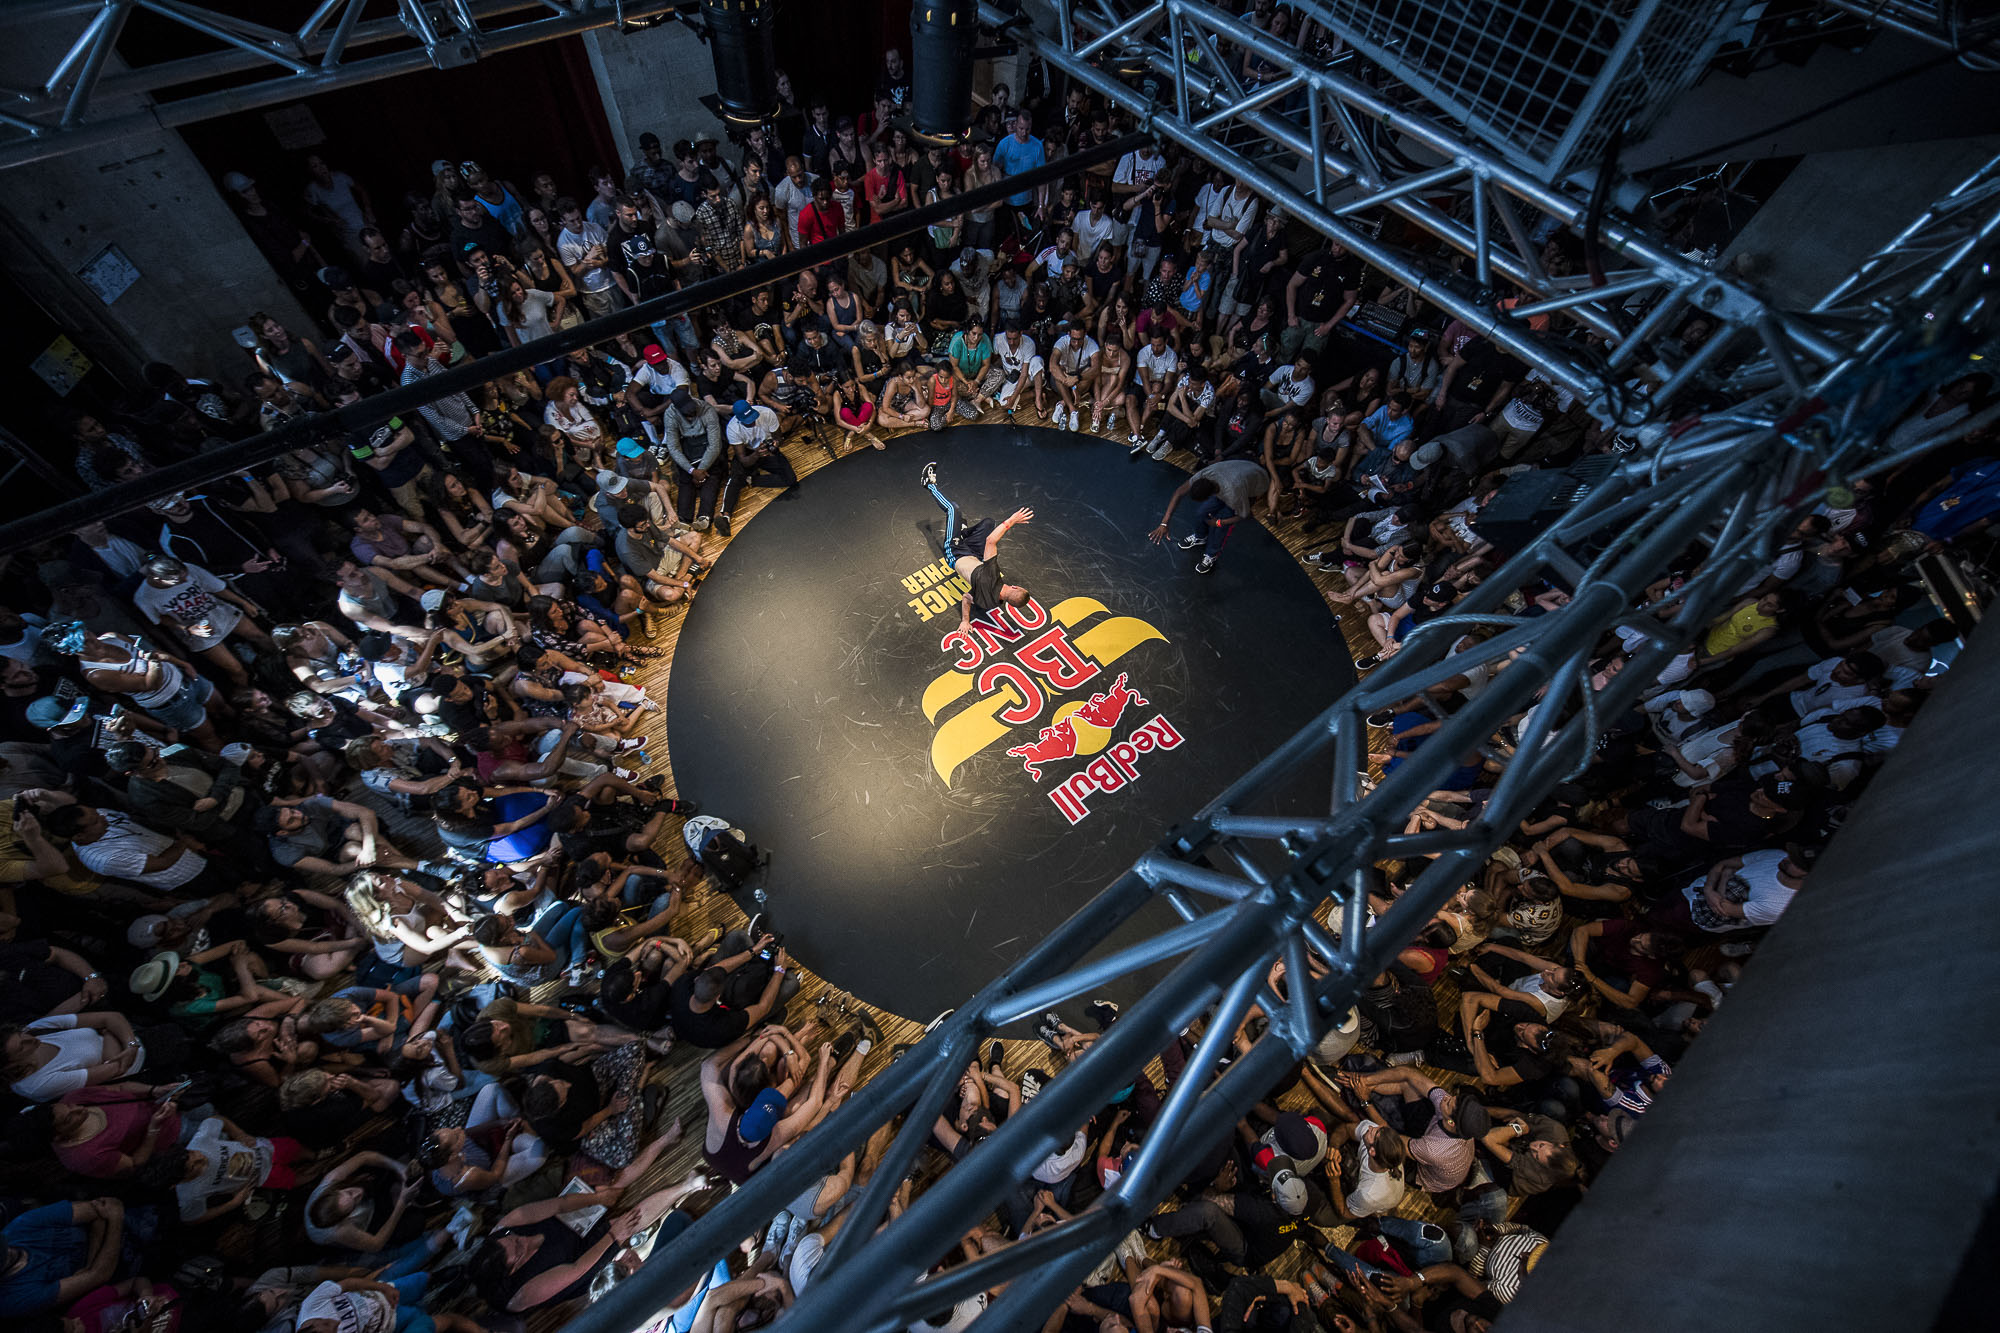 Francklin competes at the WIP Villette during the Red Bull BC One France Cypher Final in Paris, France on July 10th 2016.